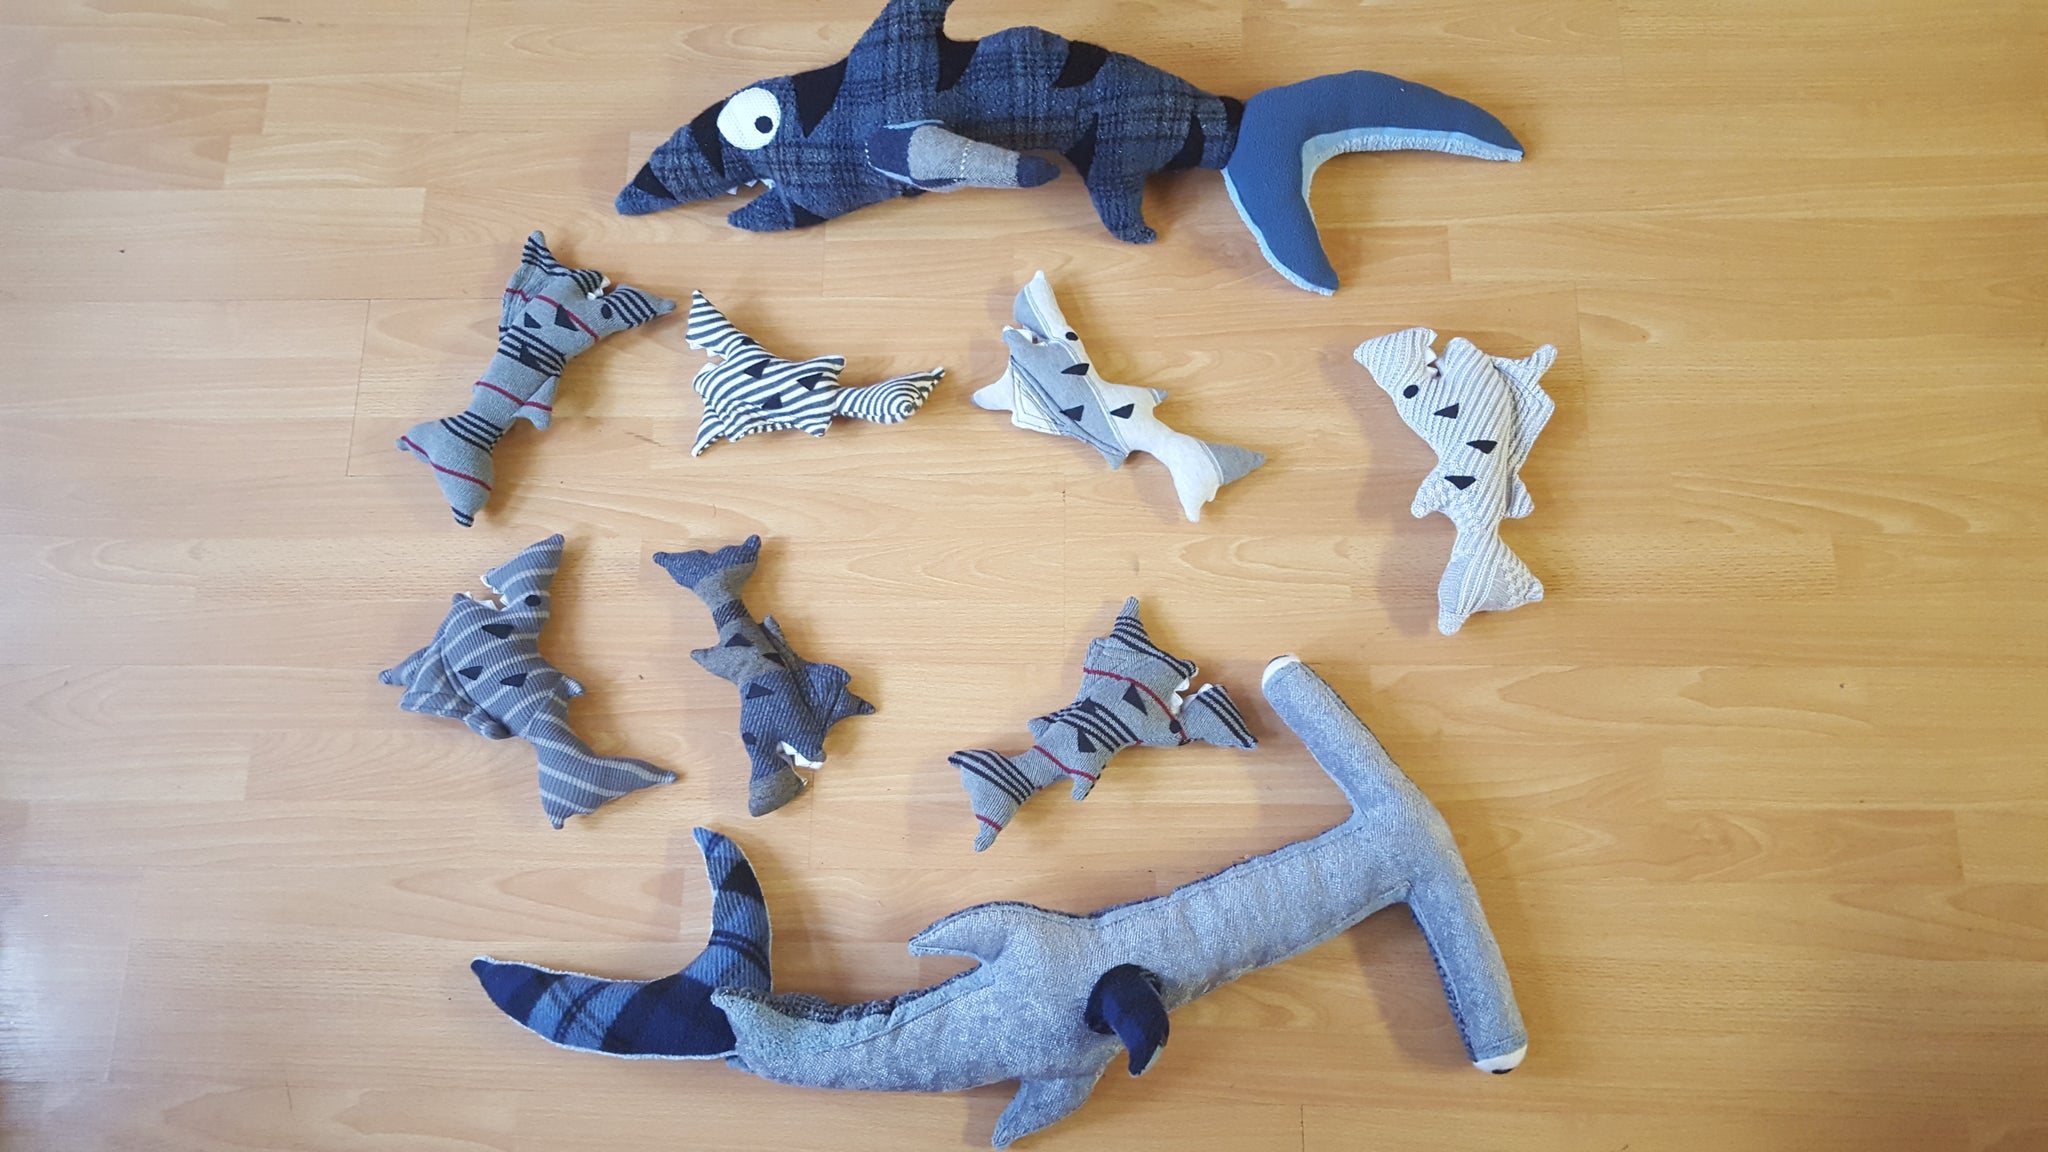 Sharks, stuffed animals